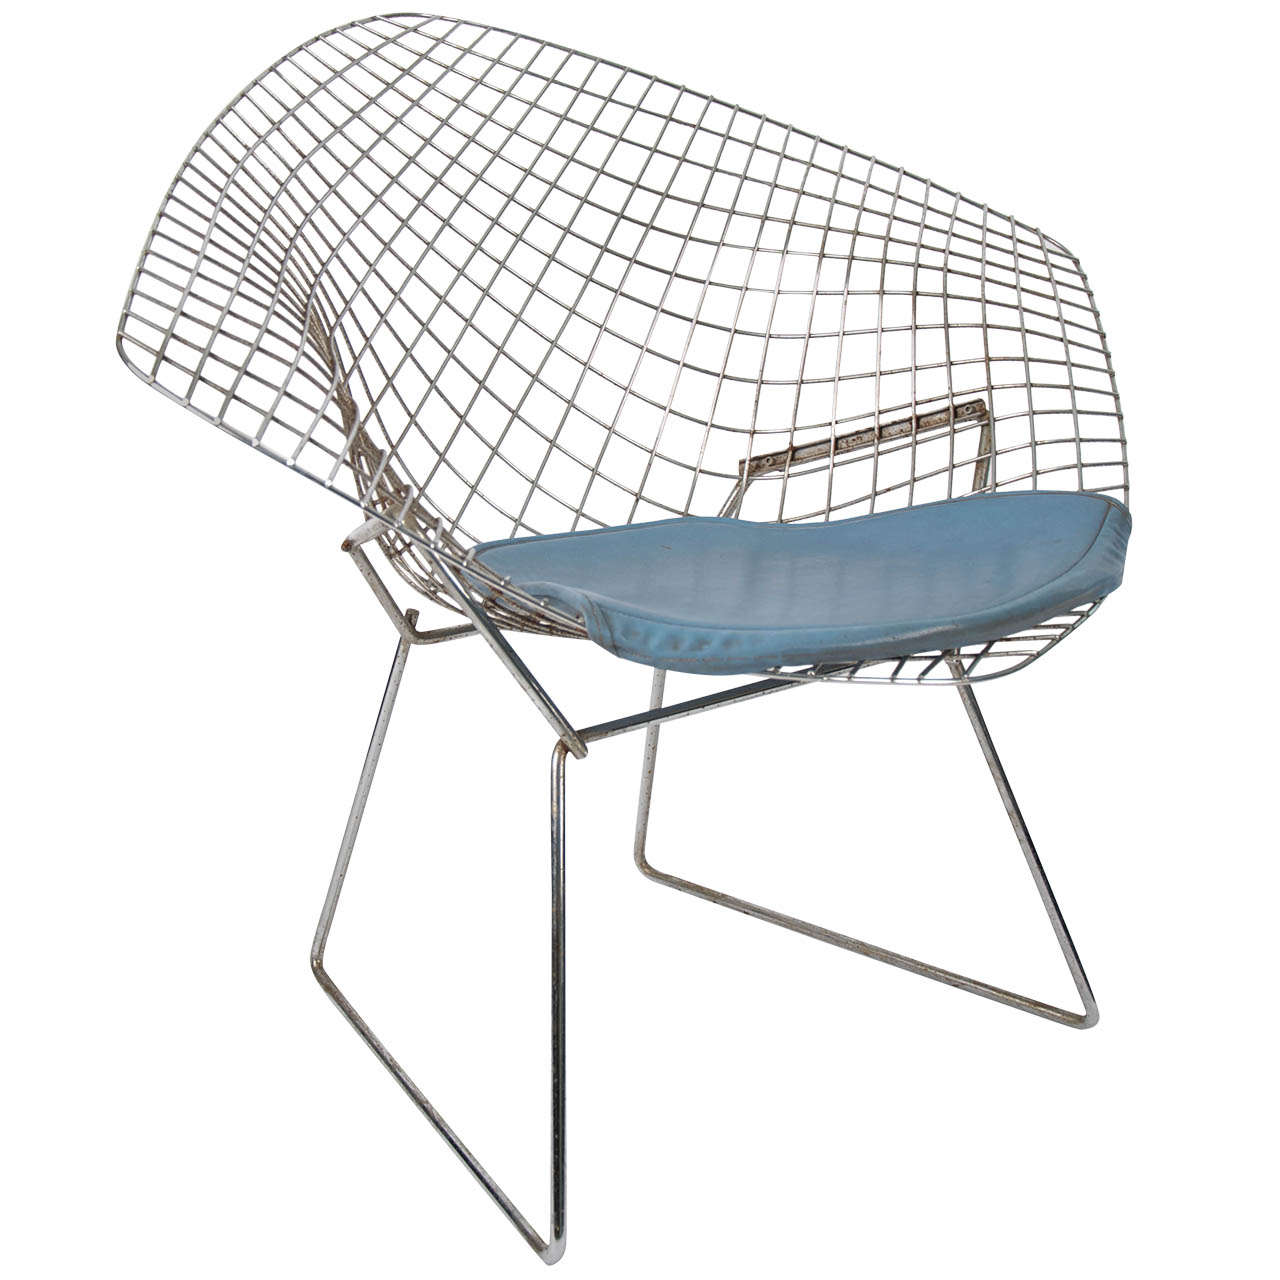 Bertoia diamond chair dimensions - Harry Bertoia Chrome Diamond Chair 1950 1